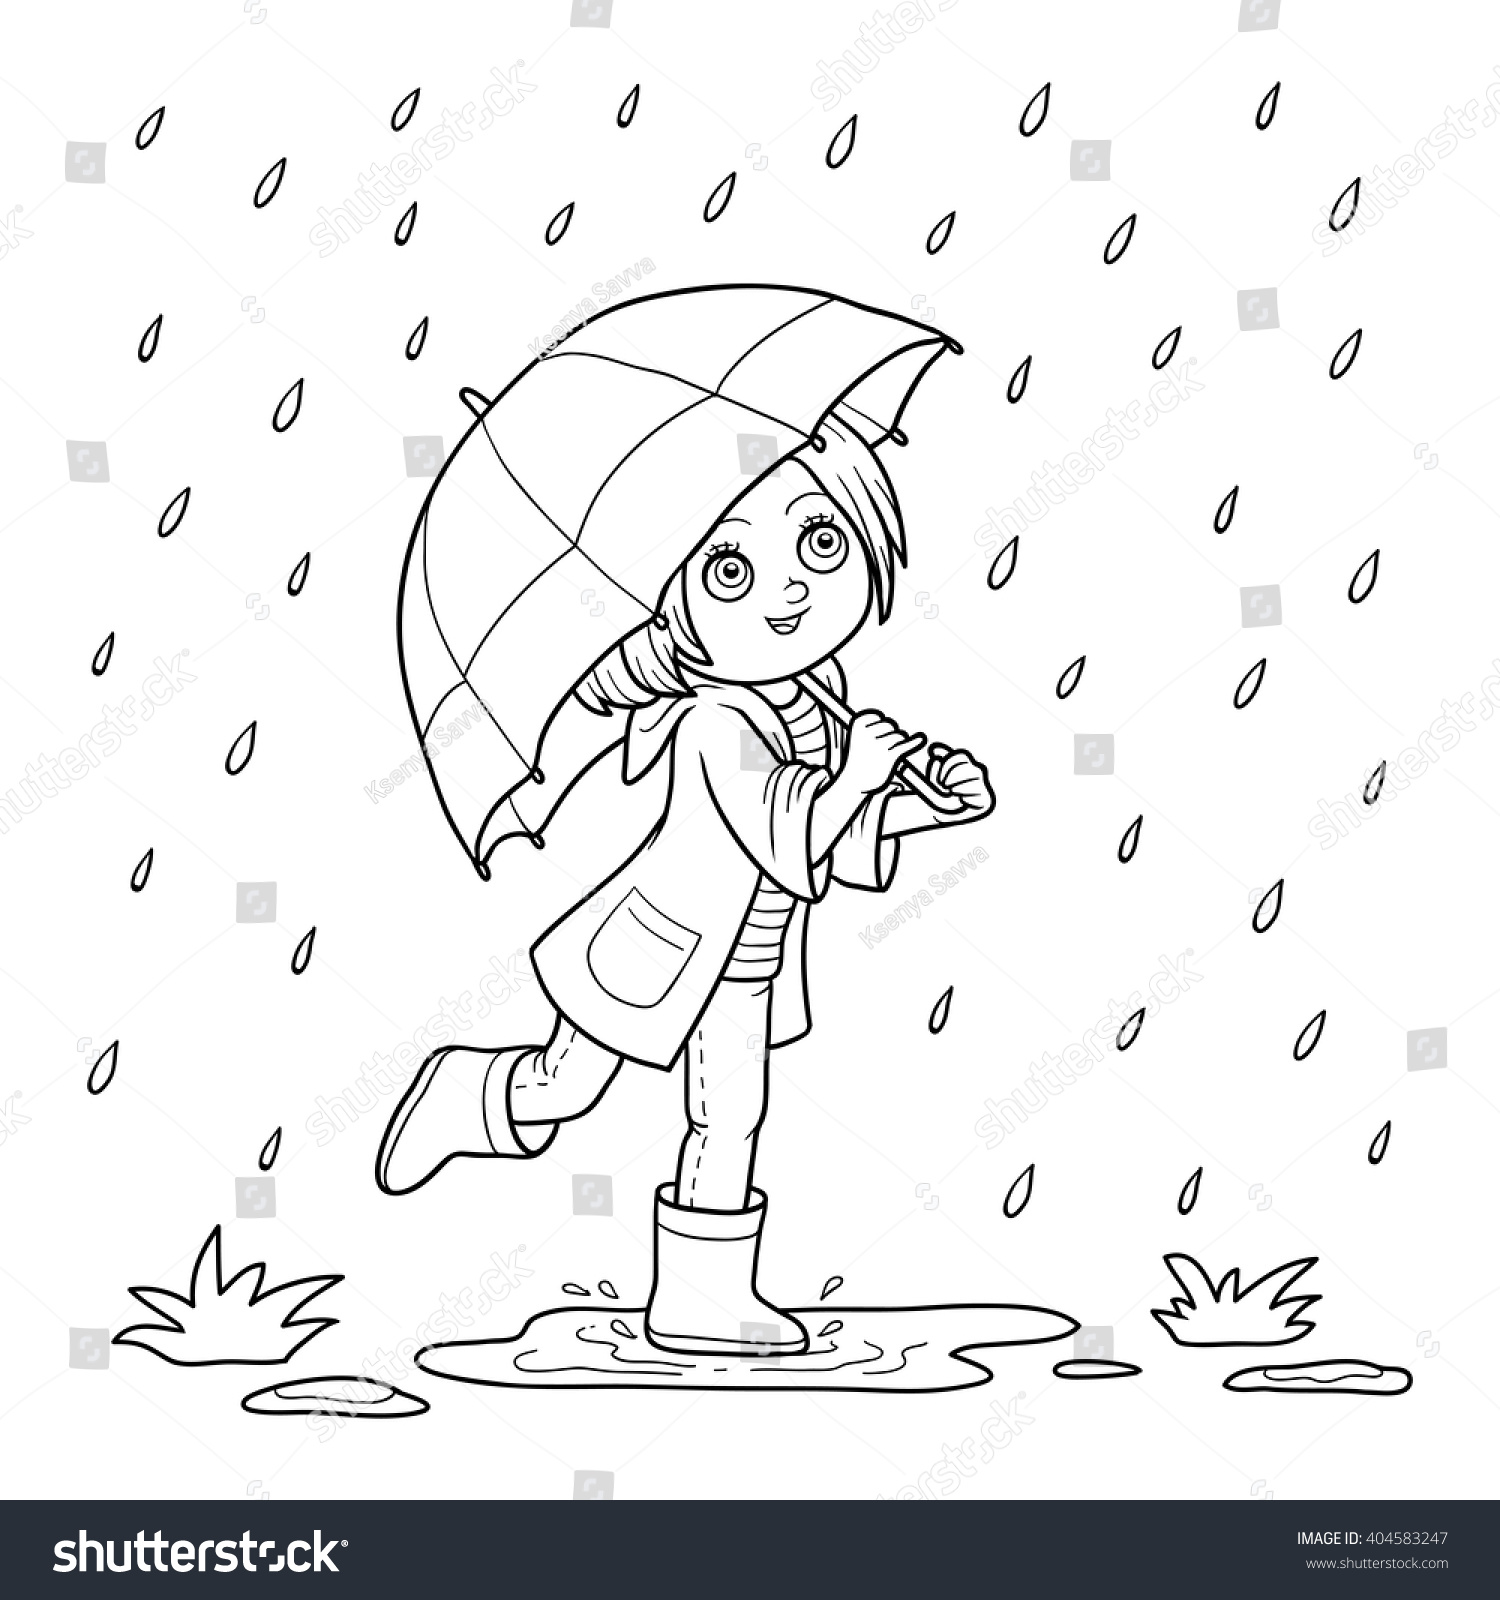 Coloring book for girl - Coloring Book For Children Girl Running With An Umbrella In The Rain